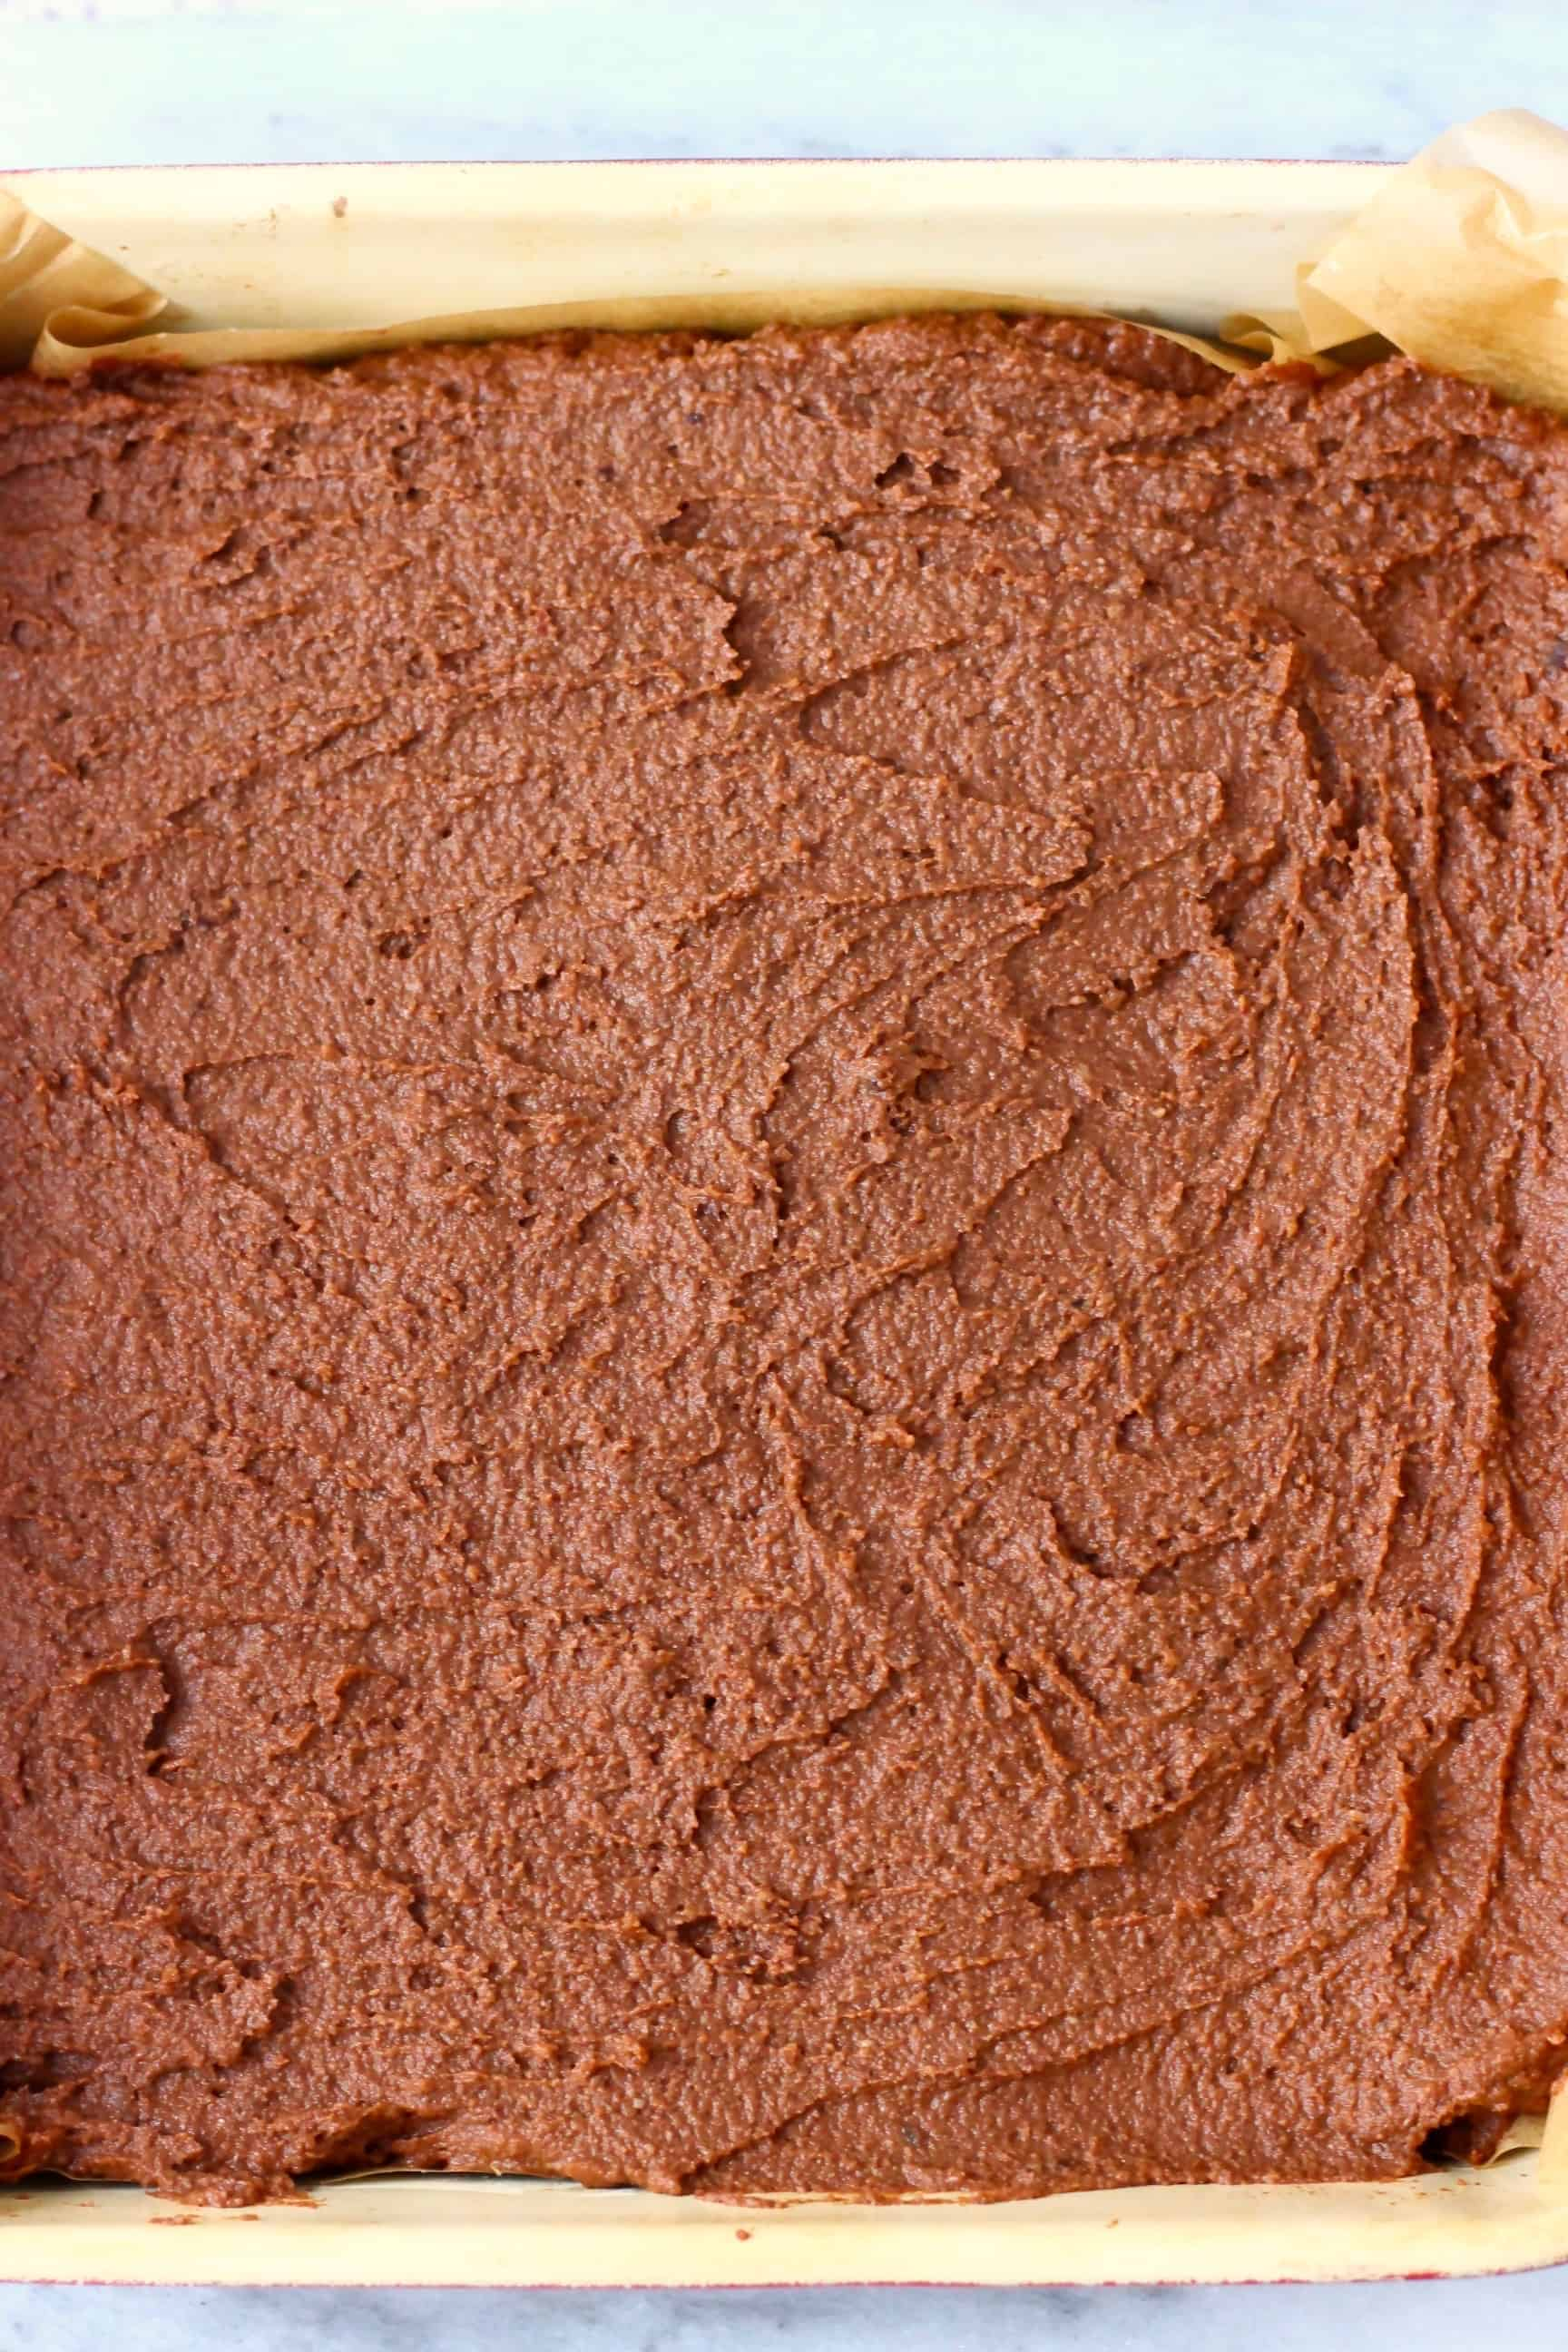 Raw sweet potato brownie batter in a baking tin lined with baking paper